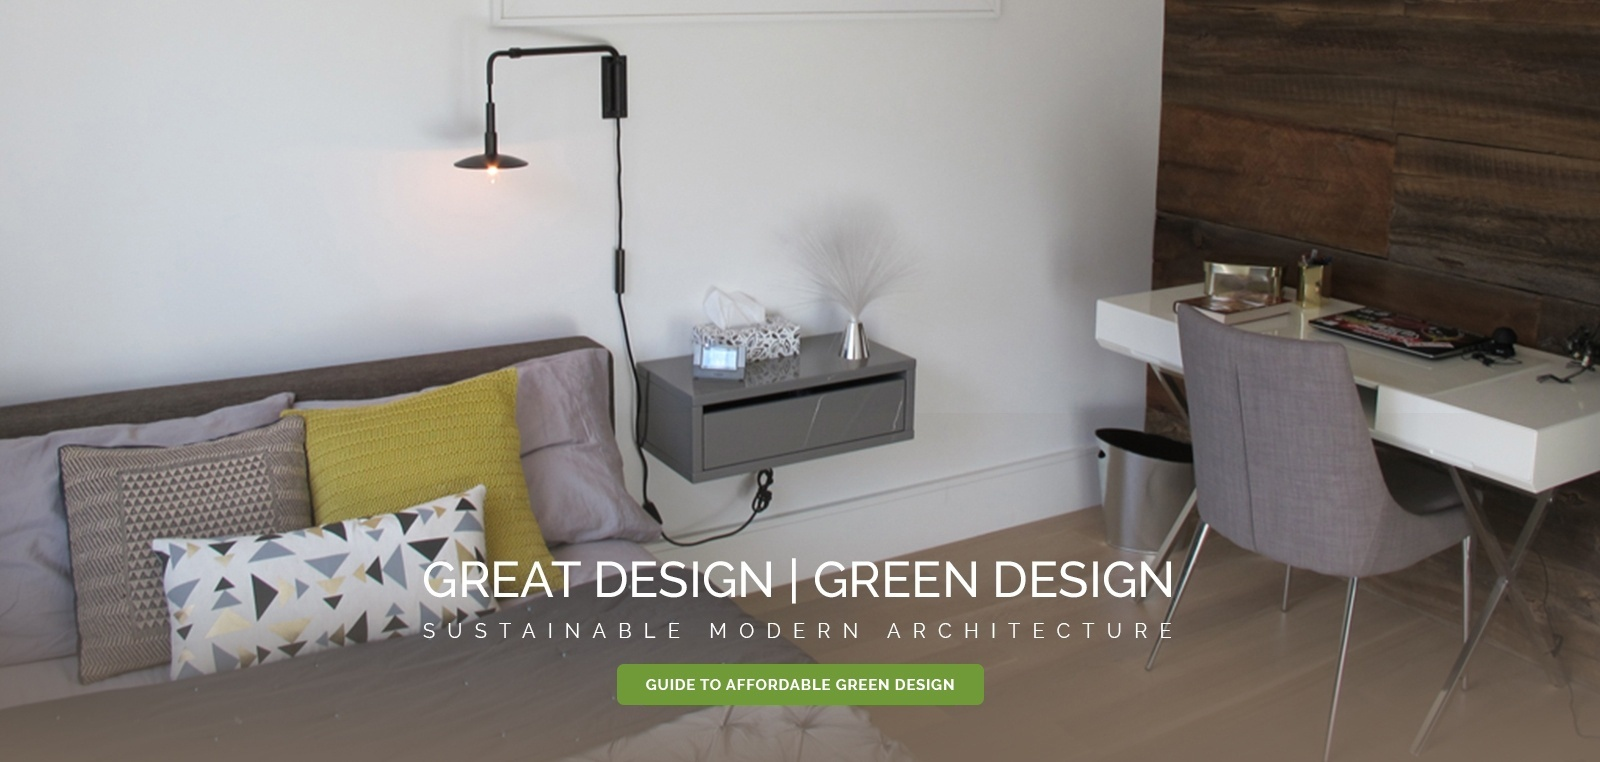 Green Residential Renovations Architects in Guelph - The Architect Builders Collaborative Inc.